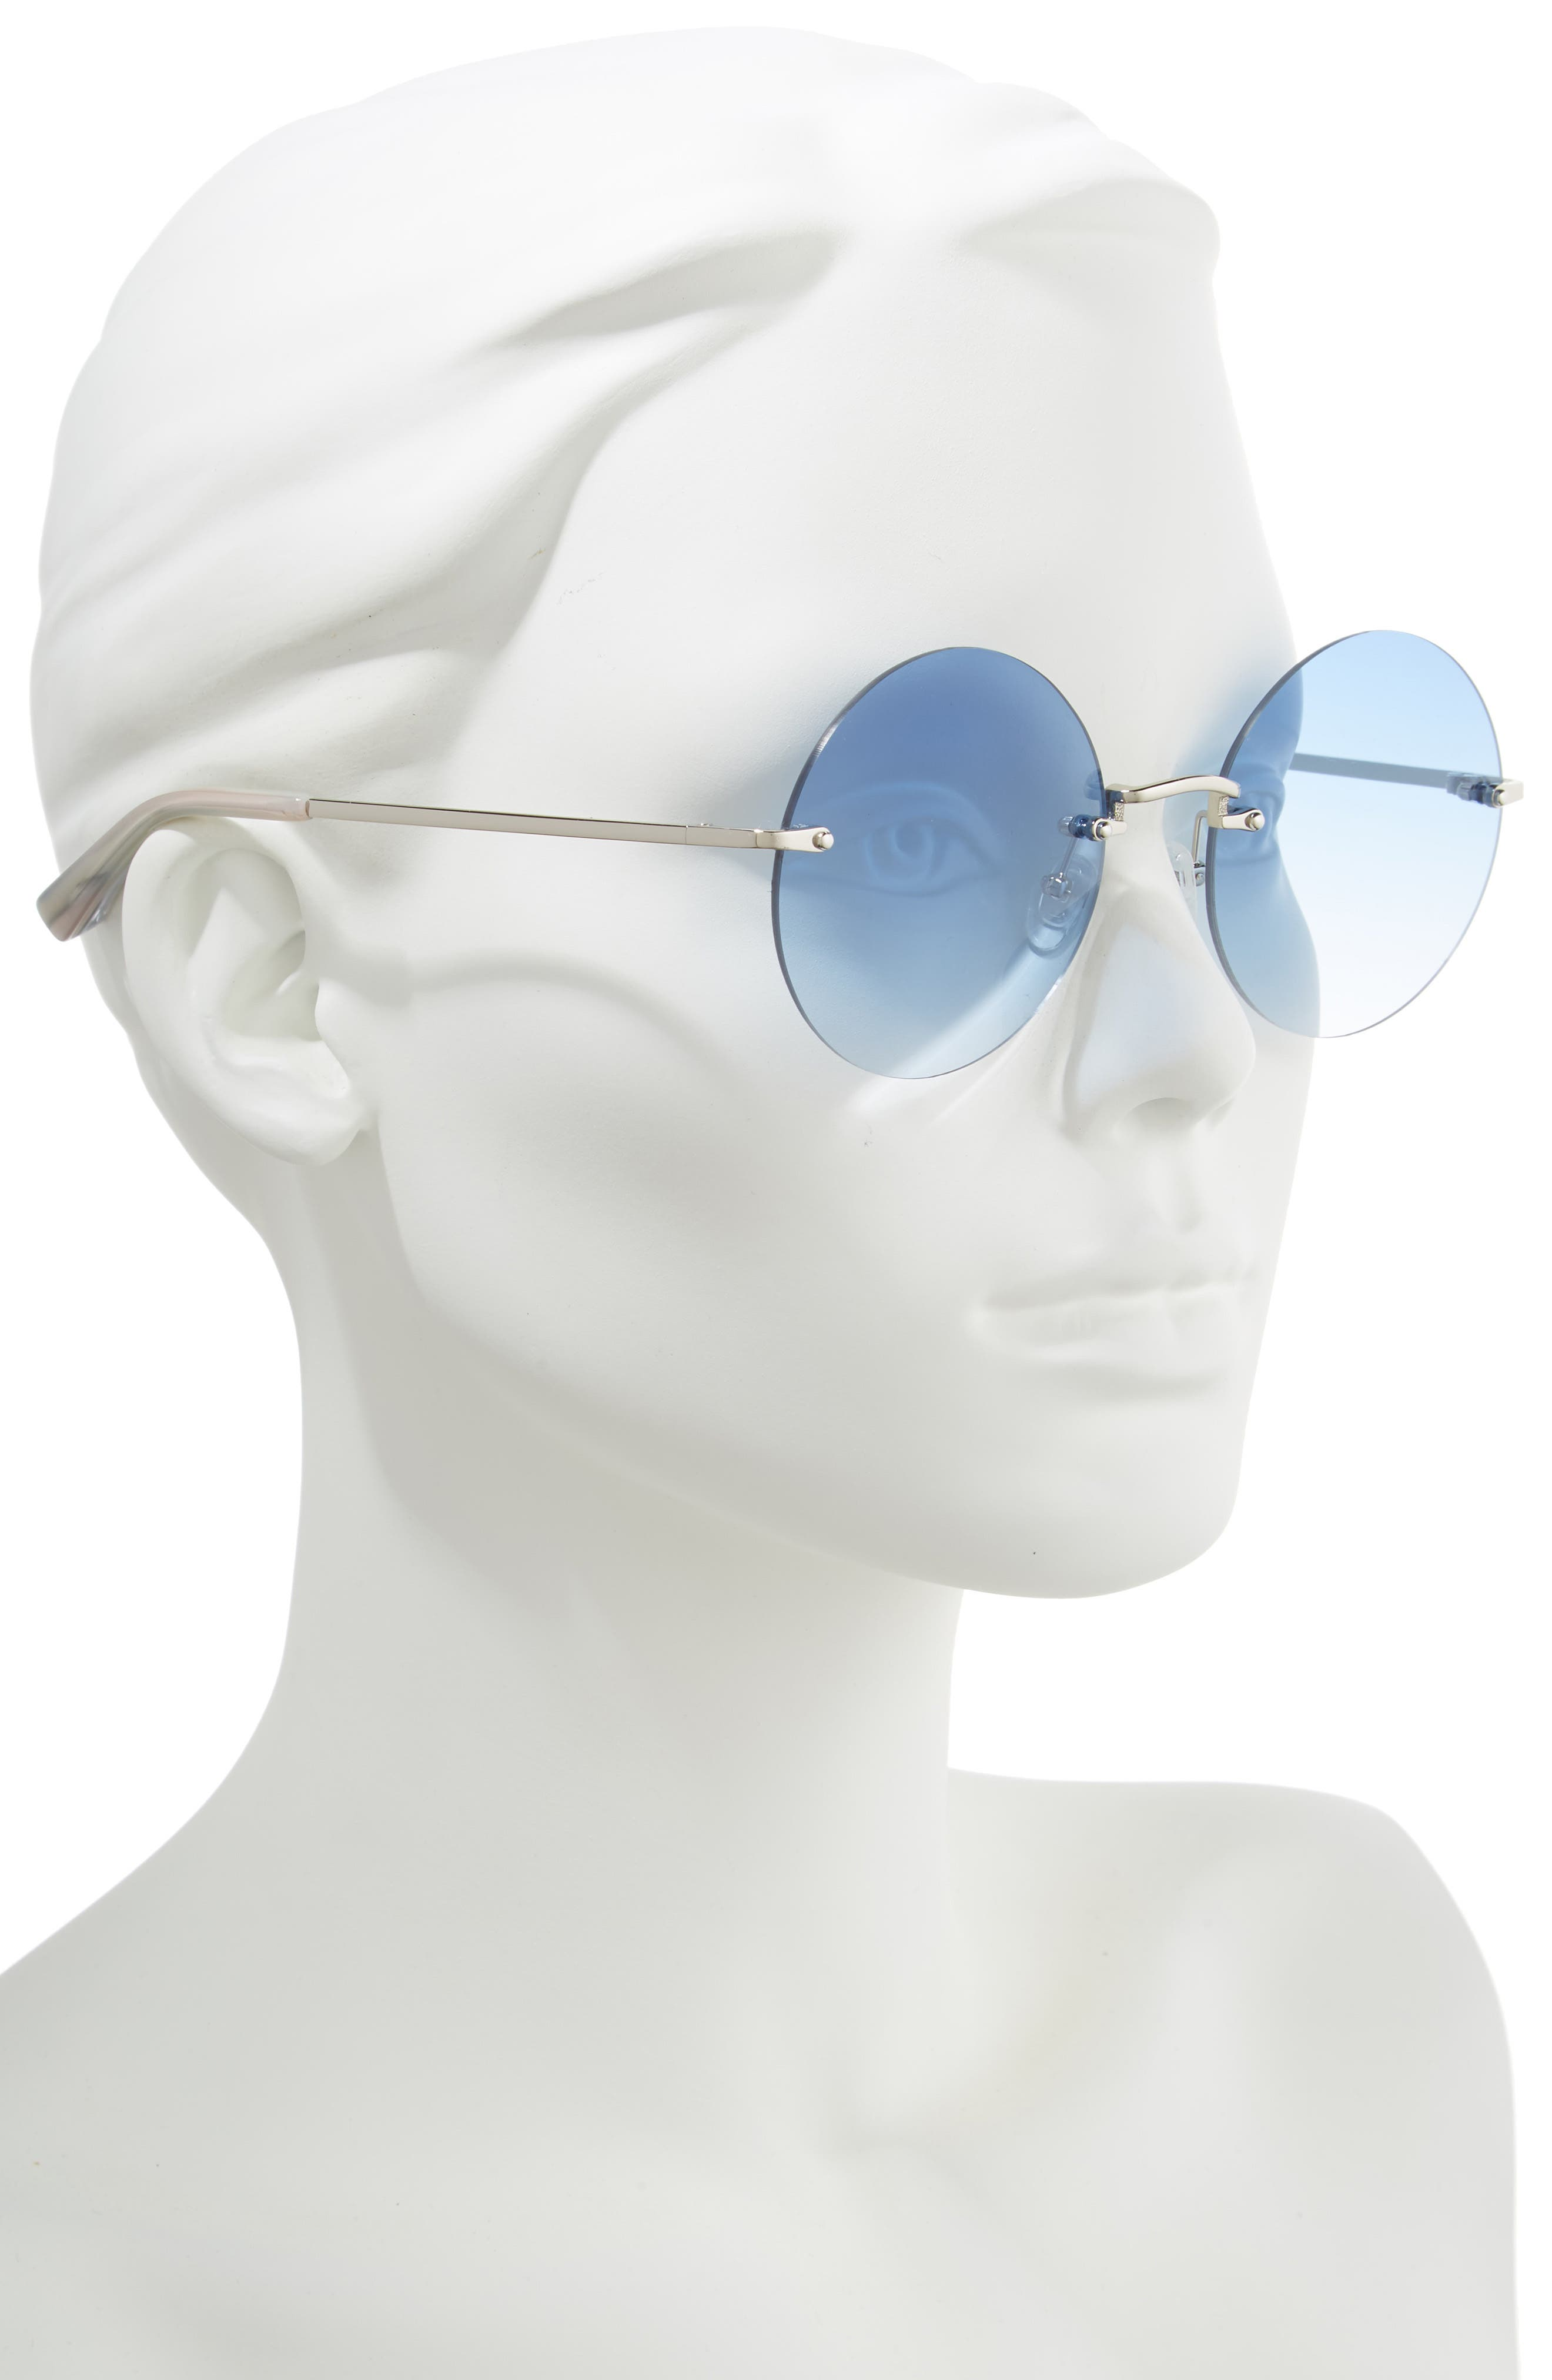 Kelly 57mm Rimless Round Sunglasses,                             Alternate thumbnail 2, color,                             SILVER/ BLUE